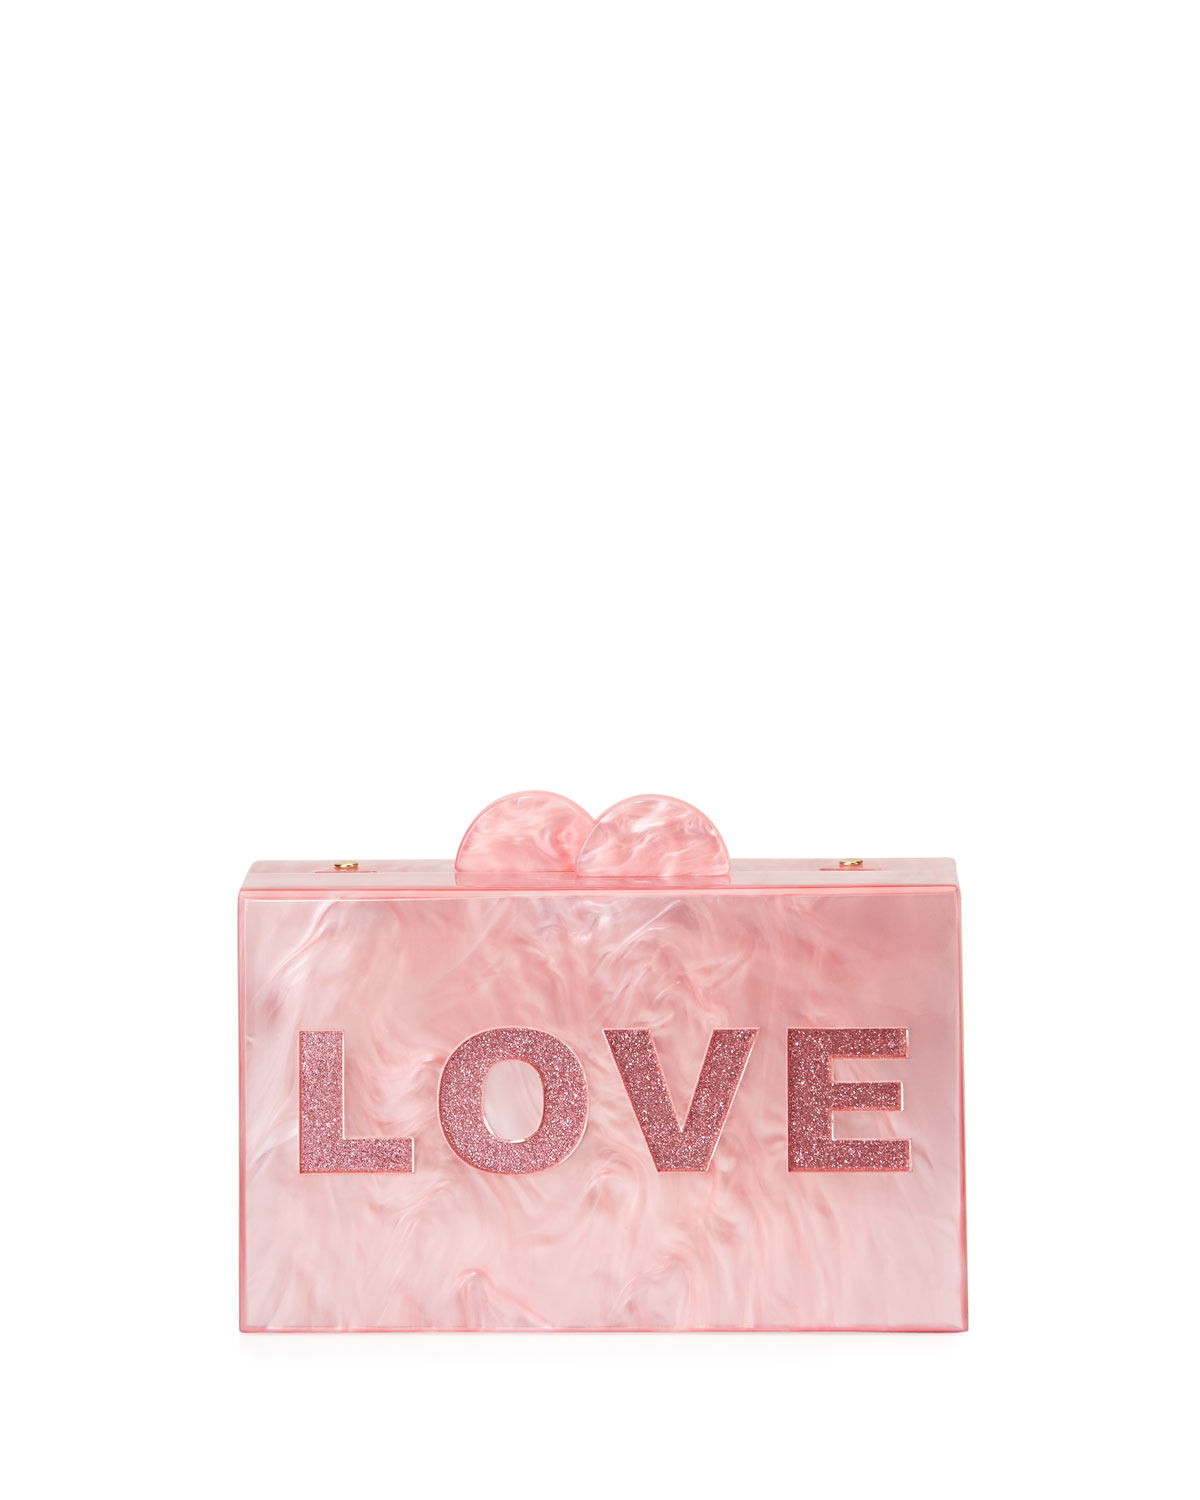 Girls' Like/Love Glittered Acrylic Box Clutch Bag